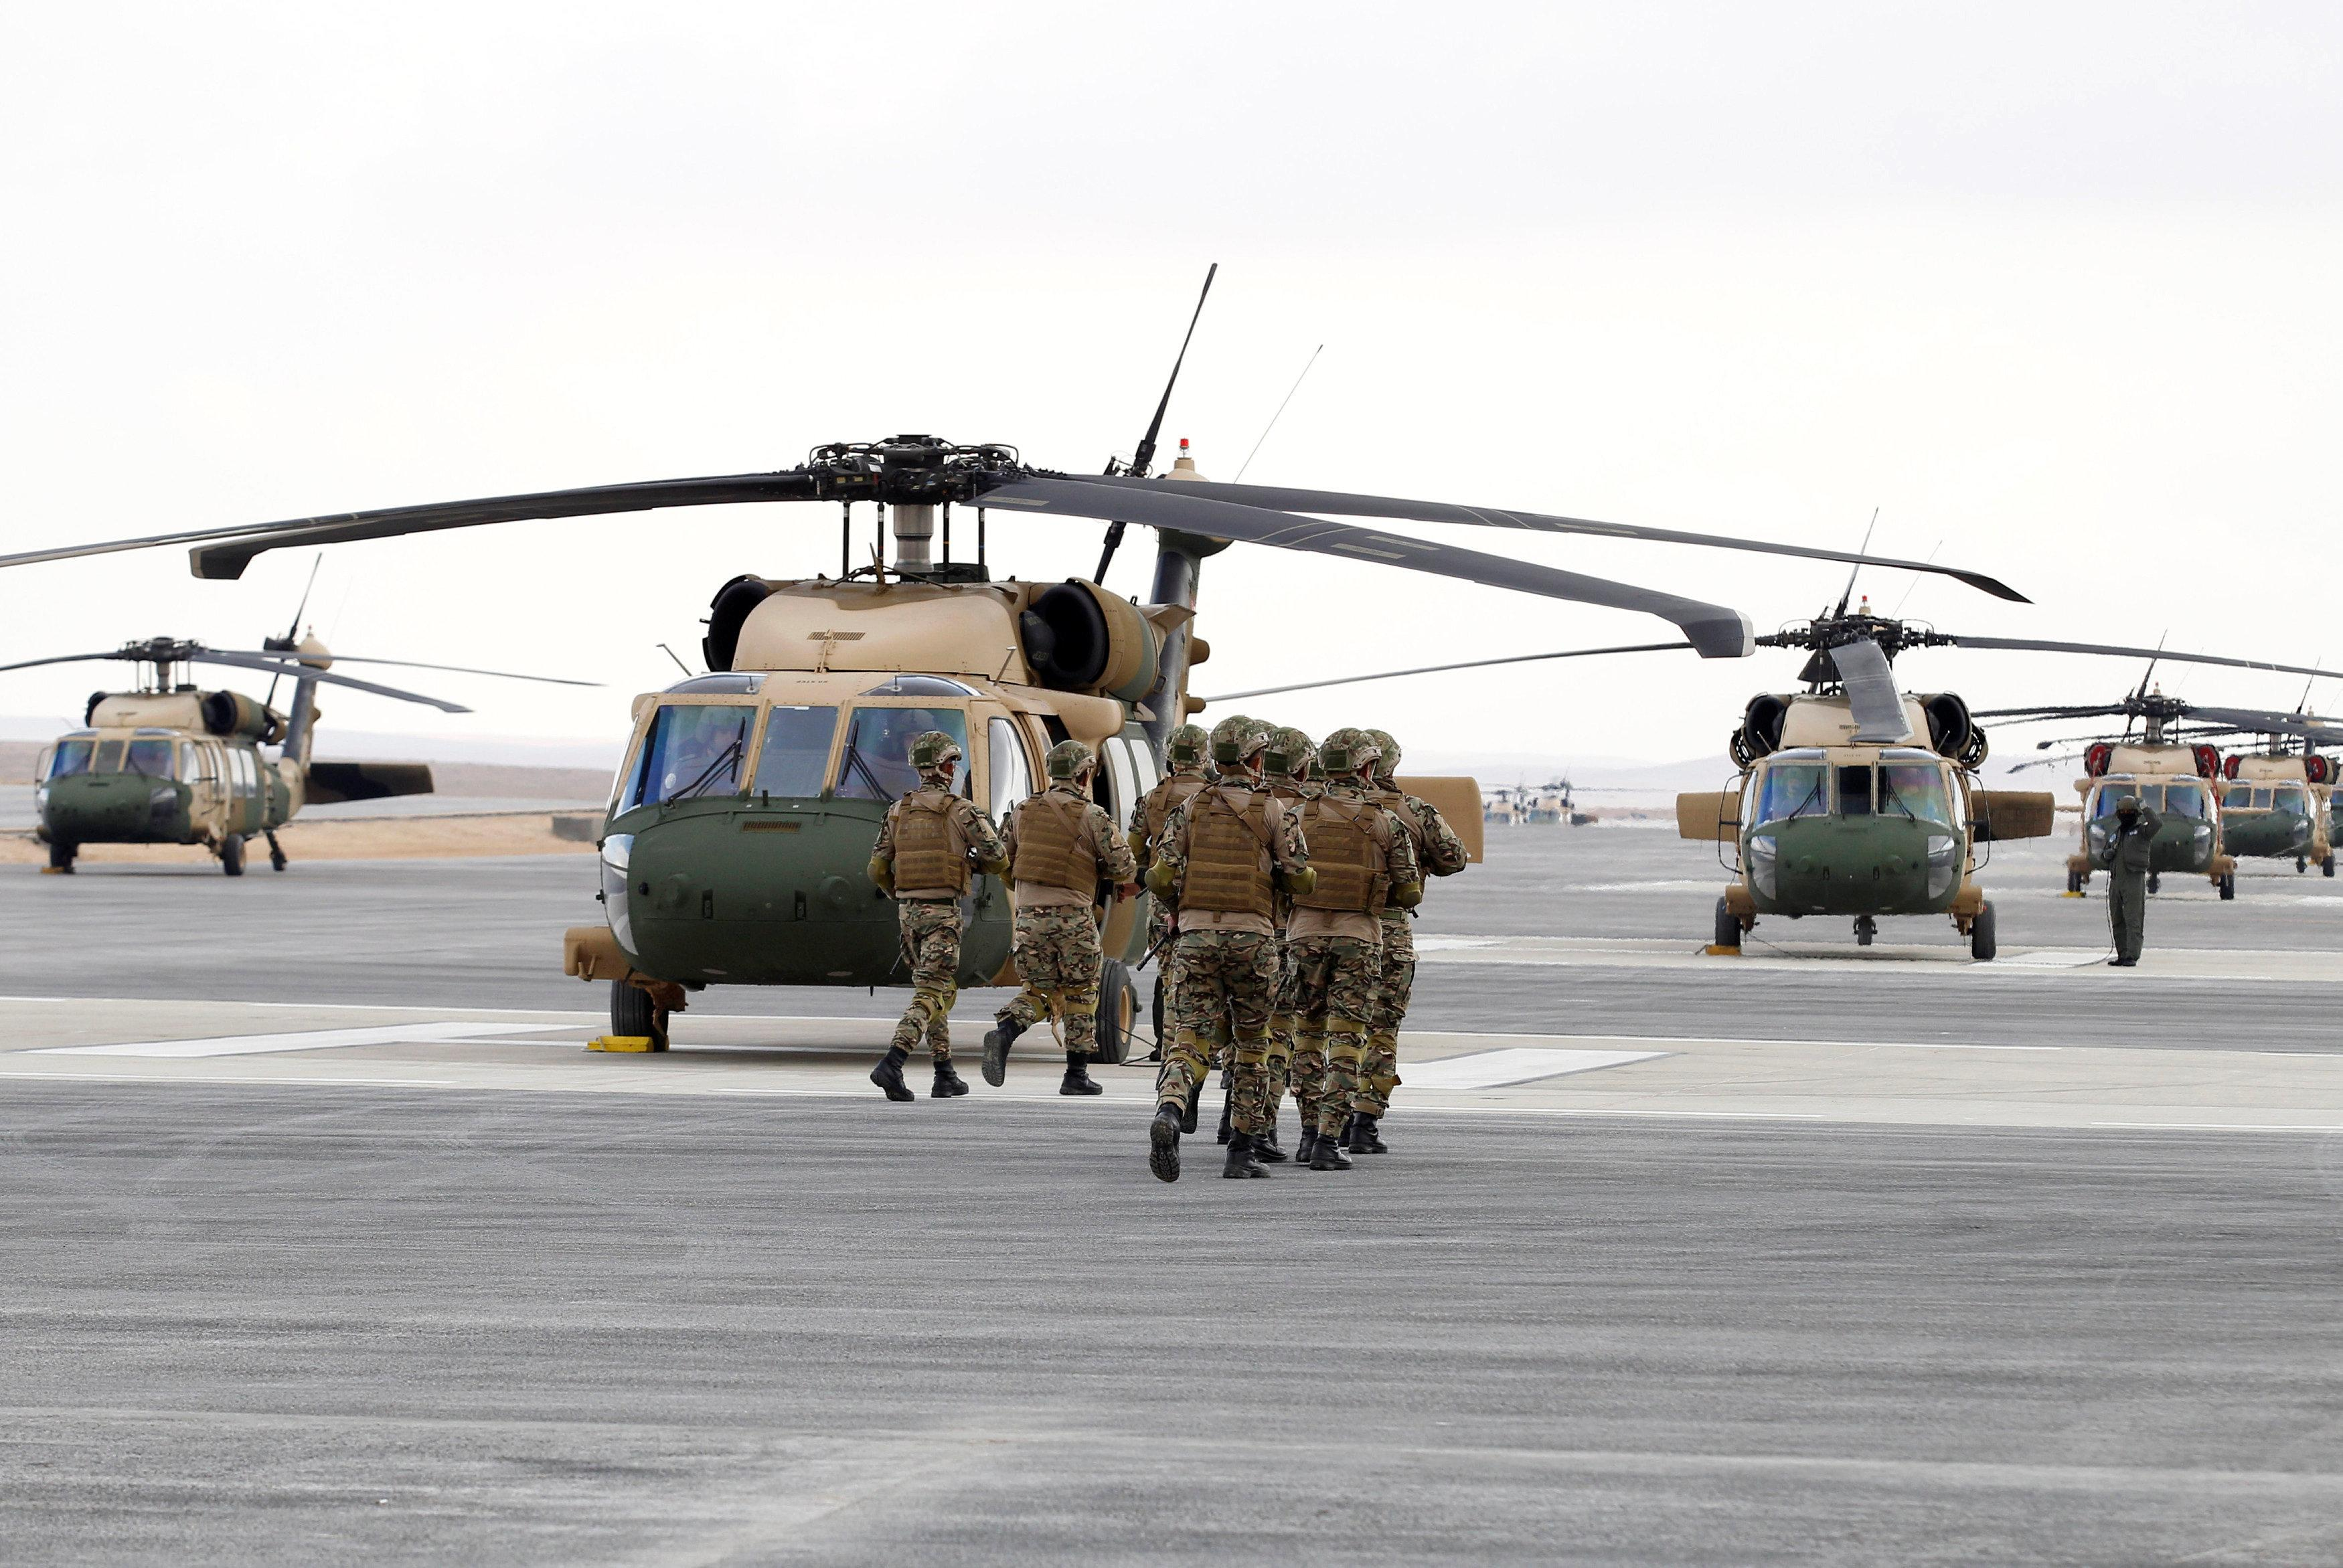 U S  delivers helicopters to bolster Jordan's border defenses - Reuters